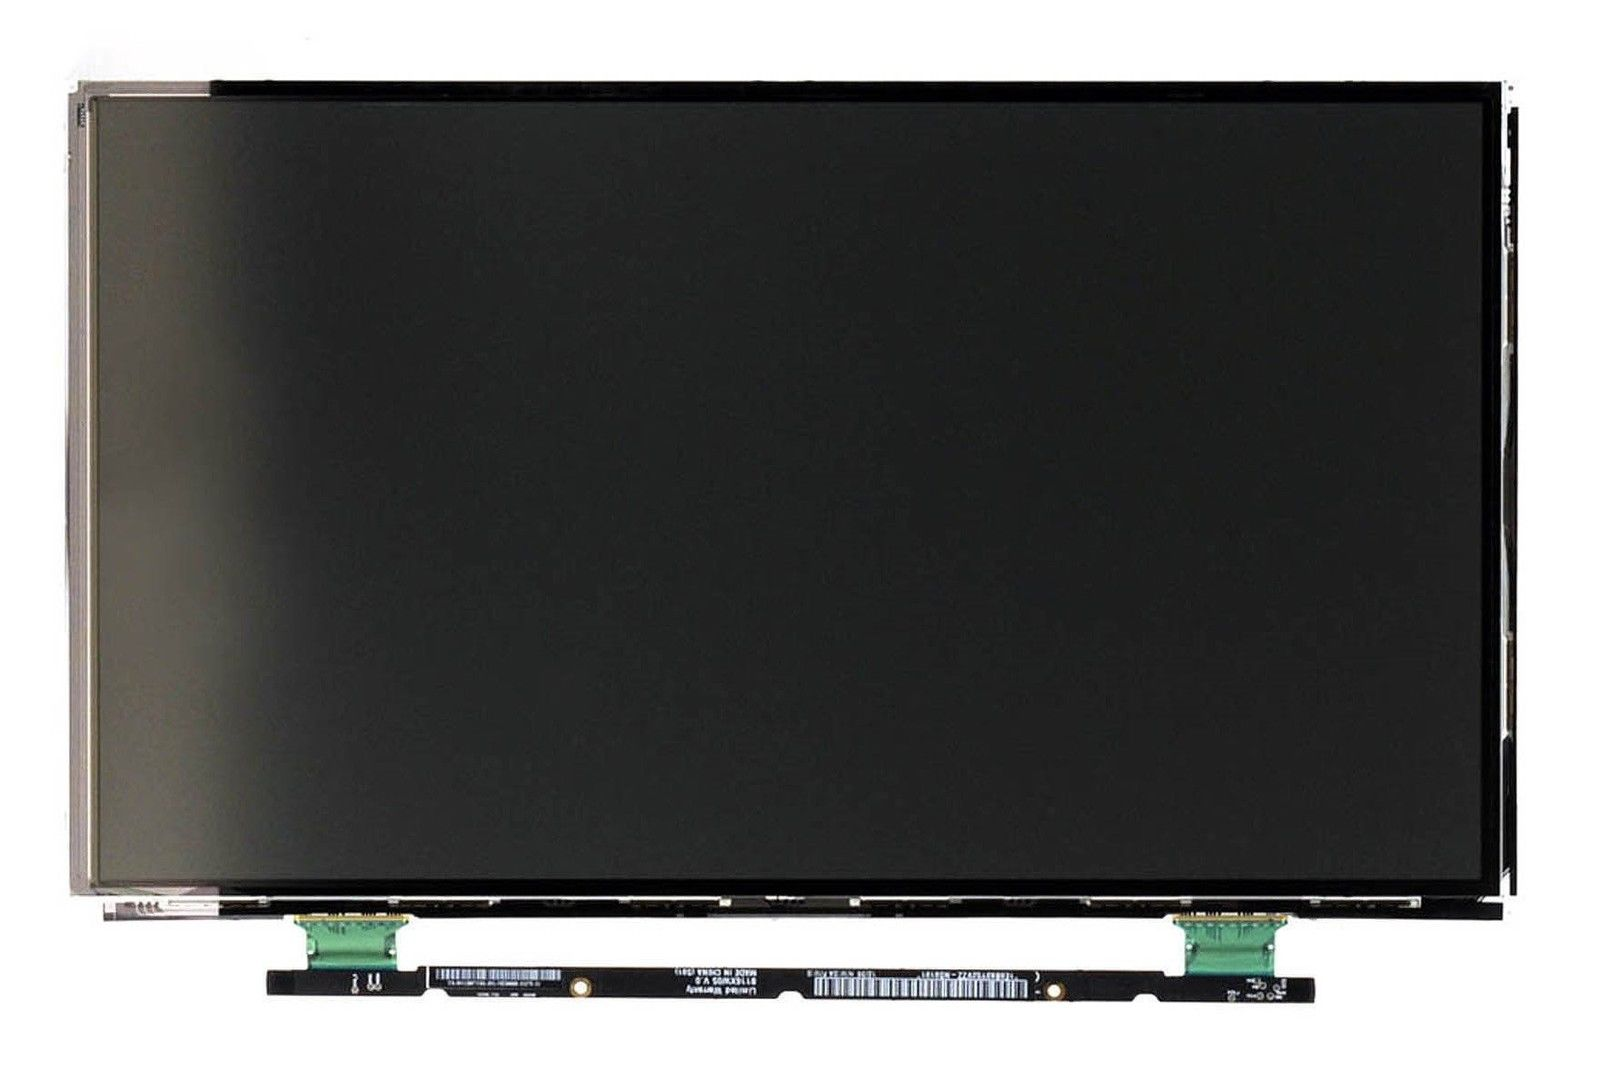 Thay màn hình Macbook Air 11.6 inch A1370 2010 2011 LCD Screen Display apple macbook air a1370 B116XW05 v.0 / LP116WH4